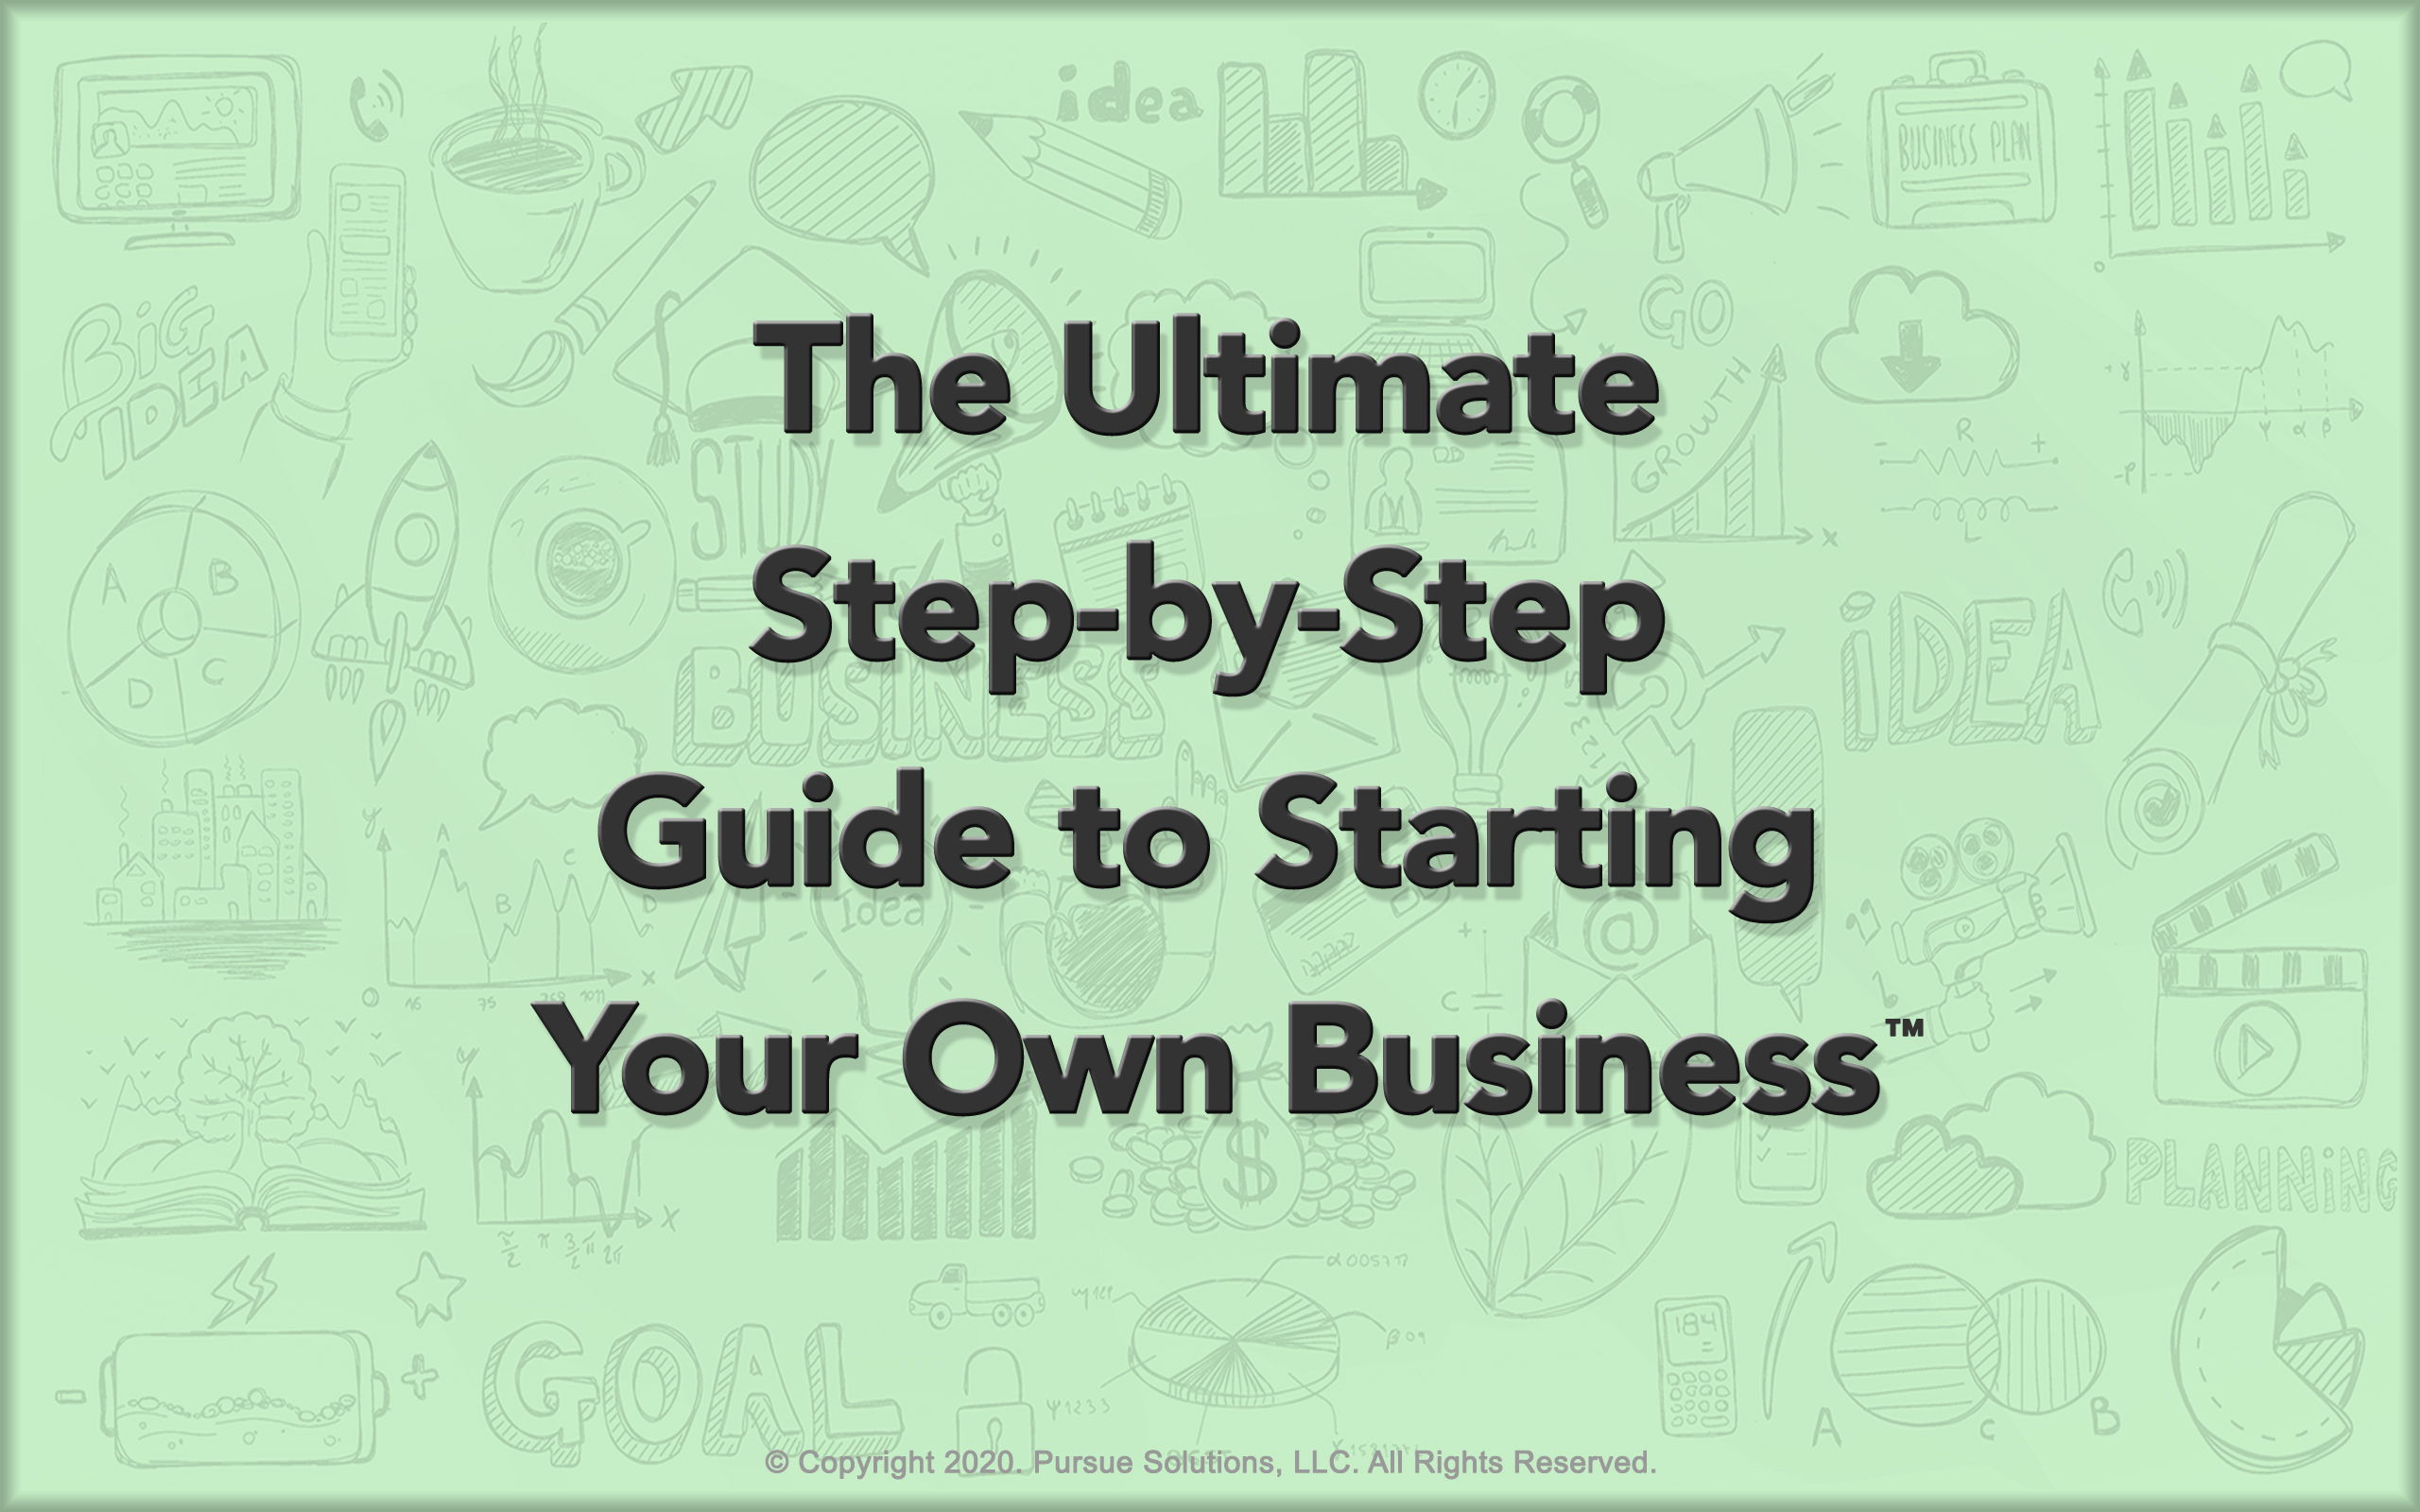 The Ultimate Step-by-Step Guide to Starting Your Own Business™